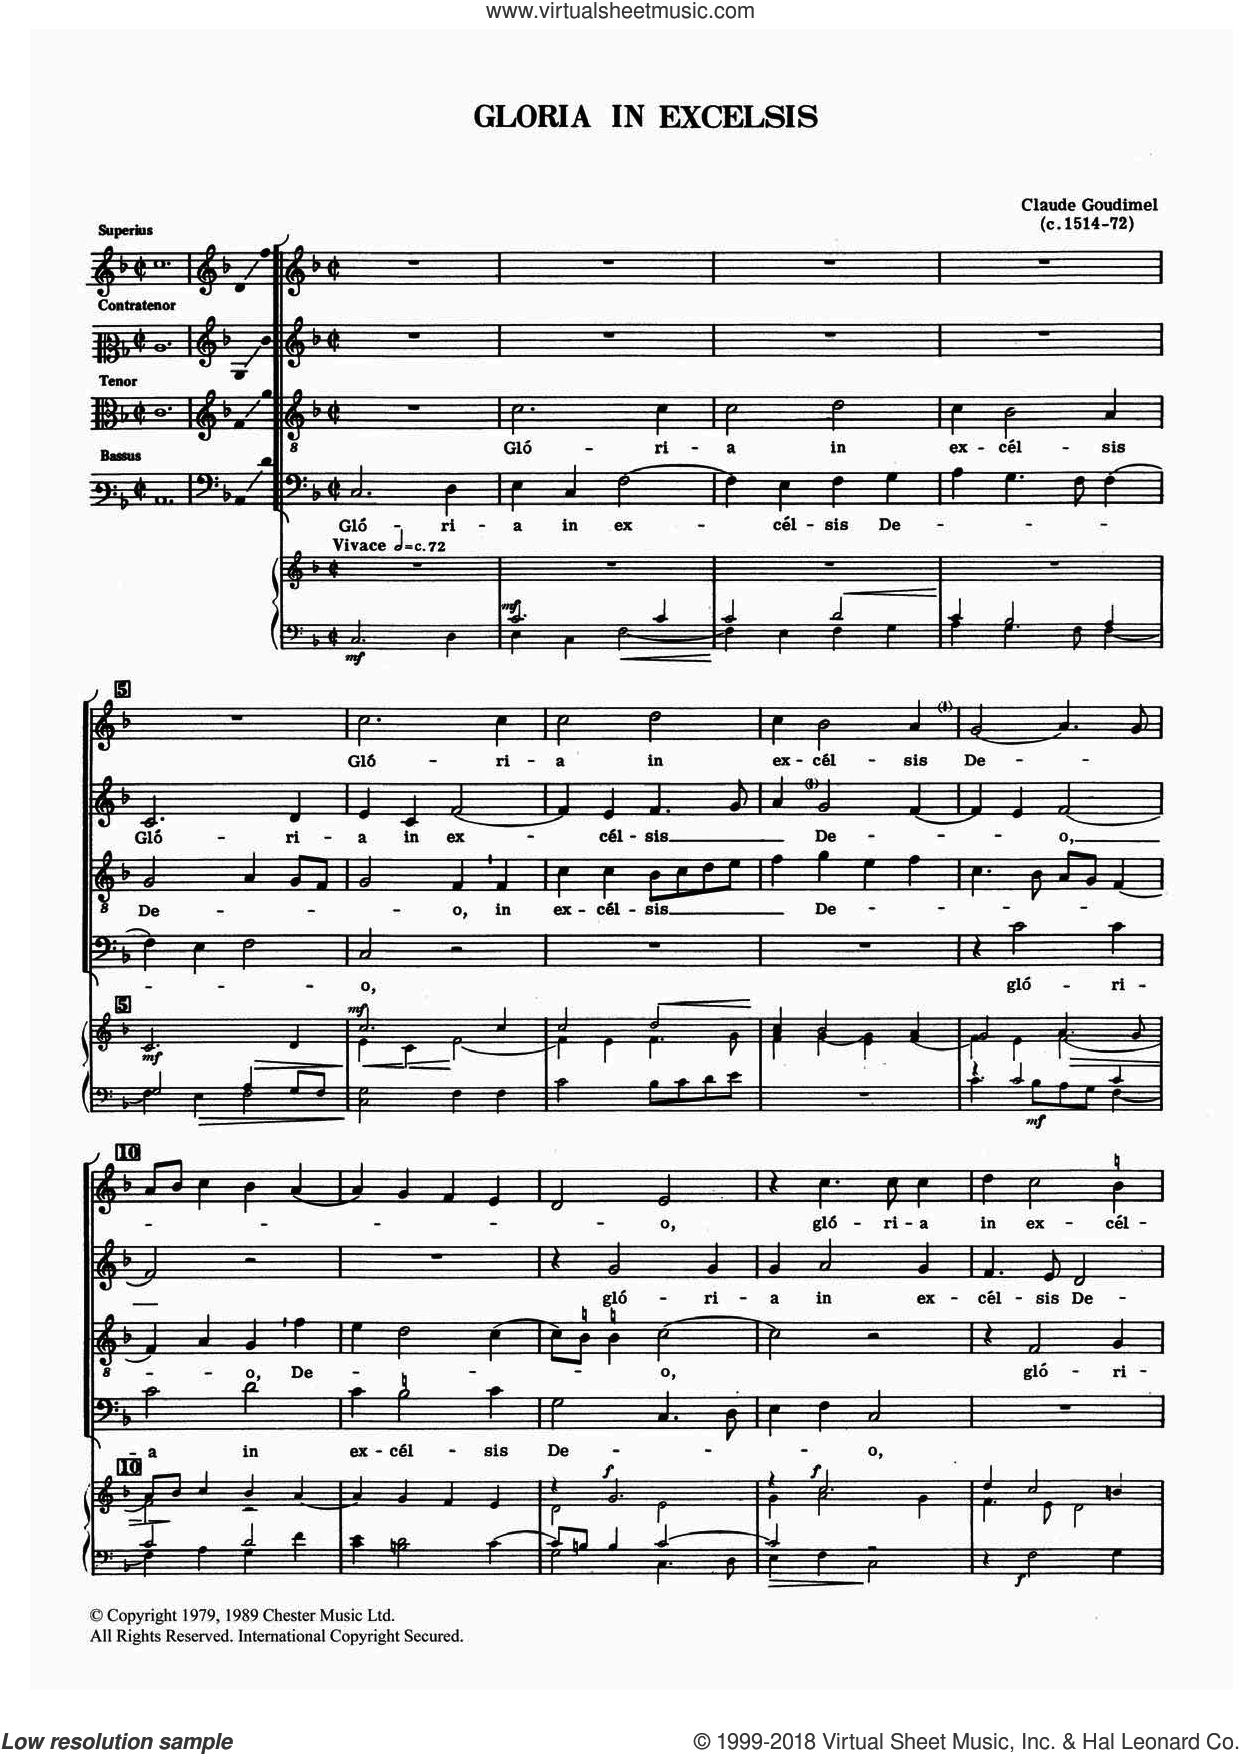 Gloria In Excelsis sheet music for choir by Claude Goudimel. Score Image Preview.